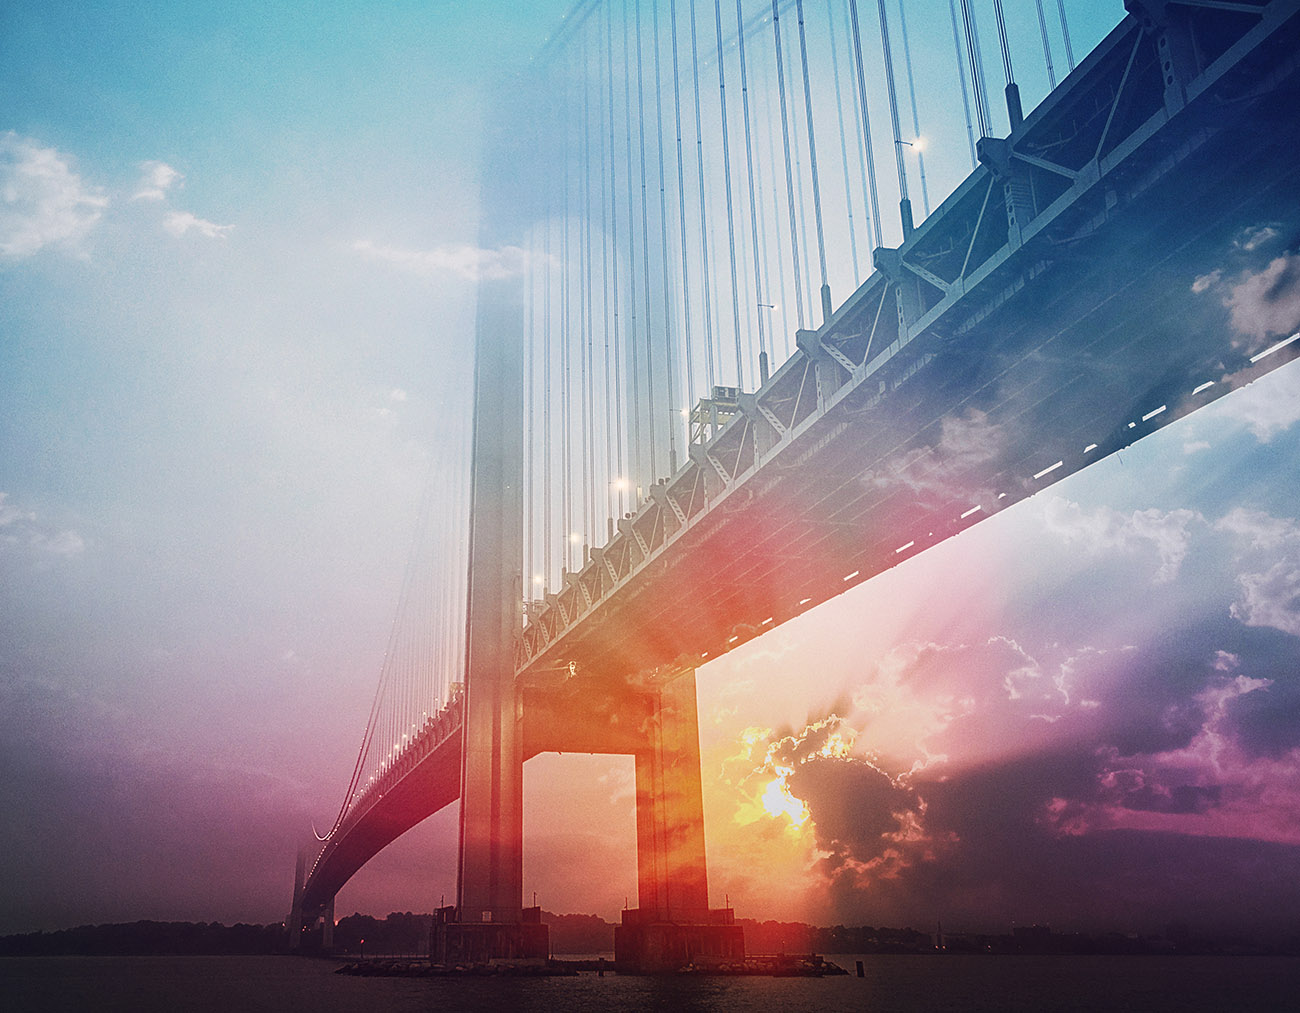 Surreal Suspension Bridge 01 - RF Stock Image